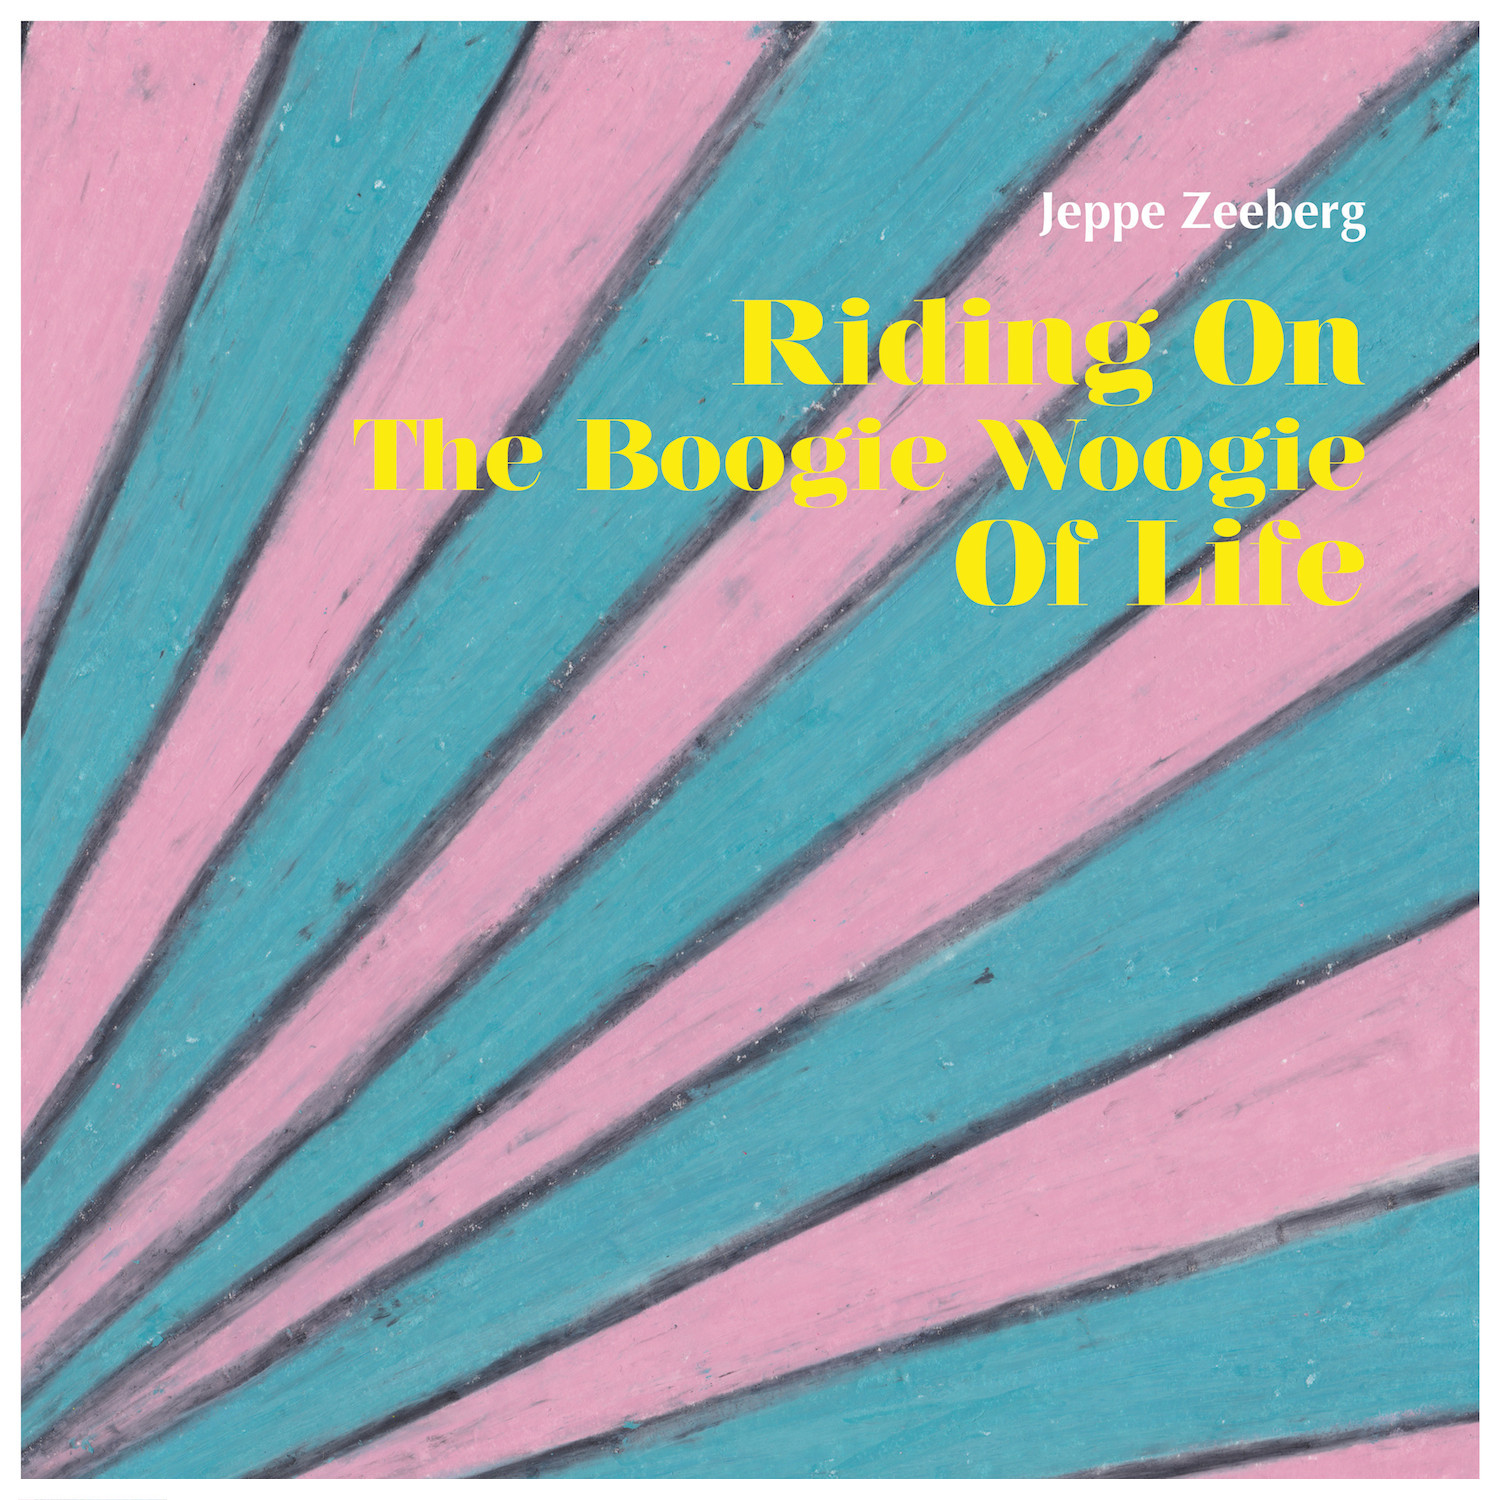 043 Riding on the Boogie Woogie of Life